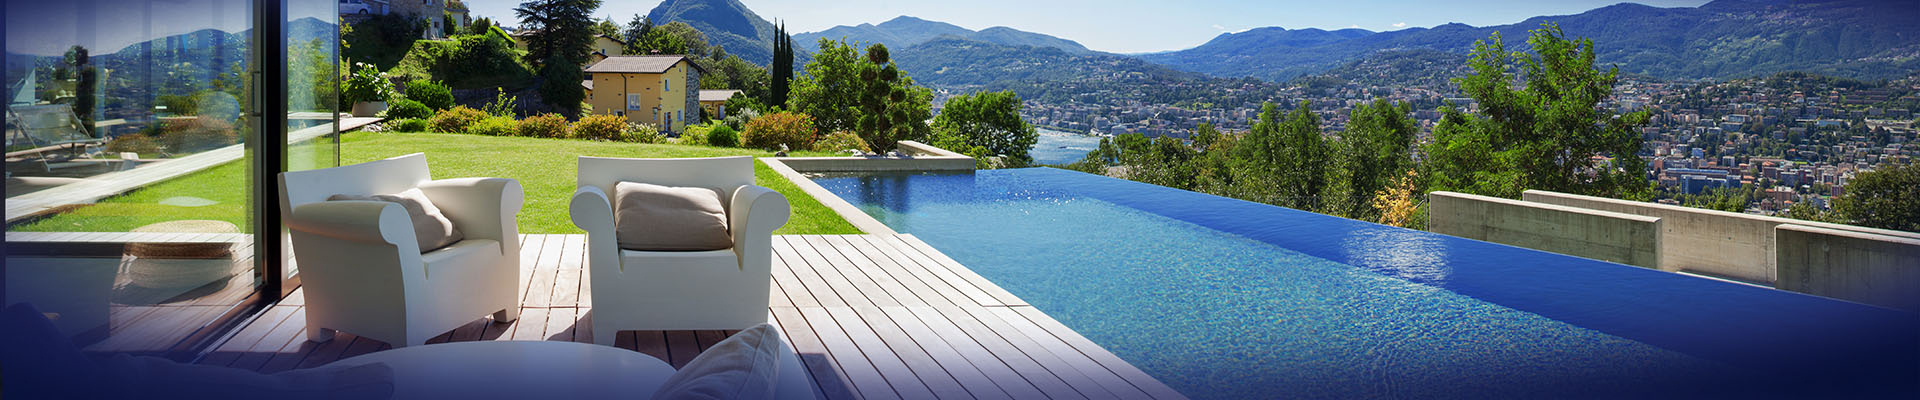 outdoor living with pool banner img - Creating an Outdoor Oasis, with the added luxury of your own private swimming pool